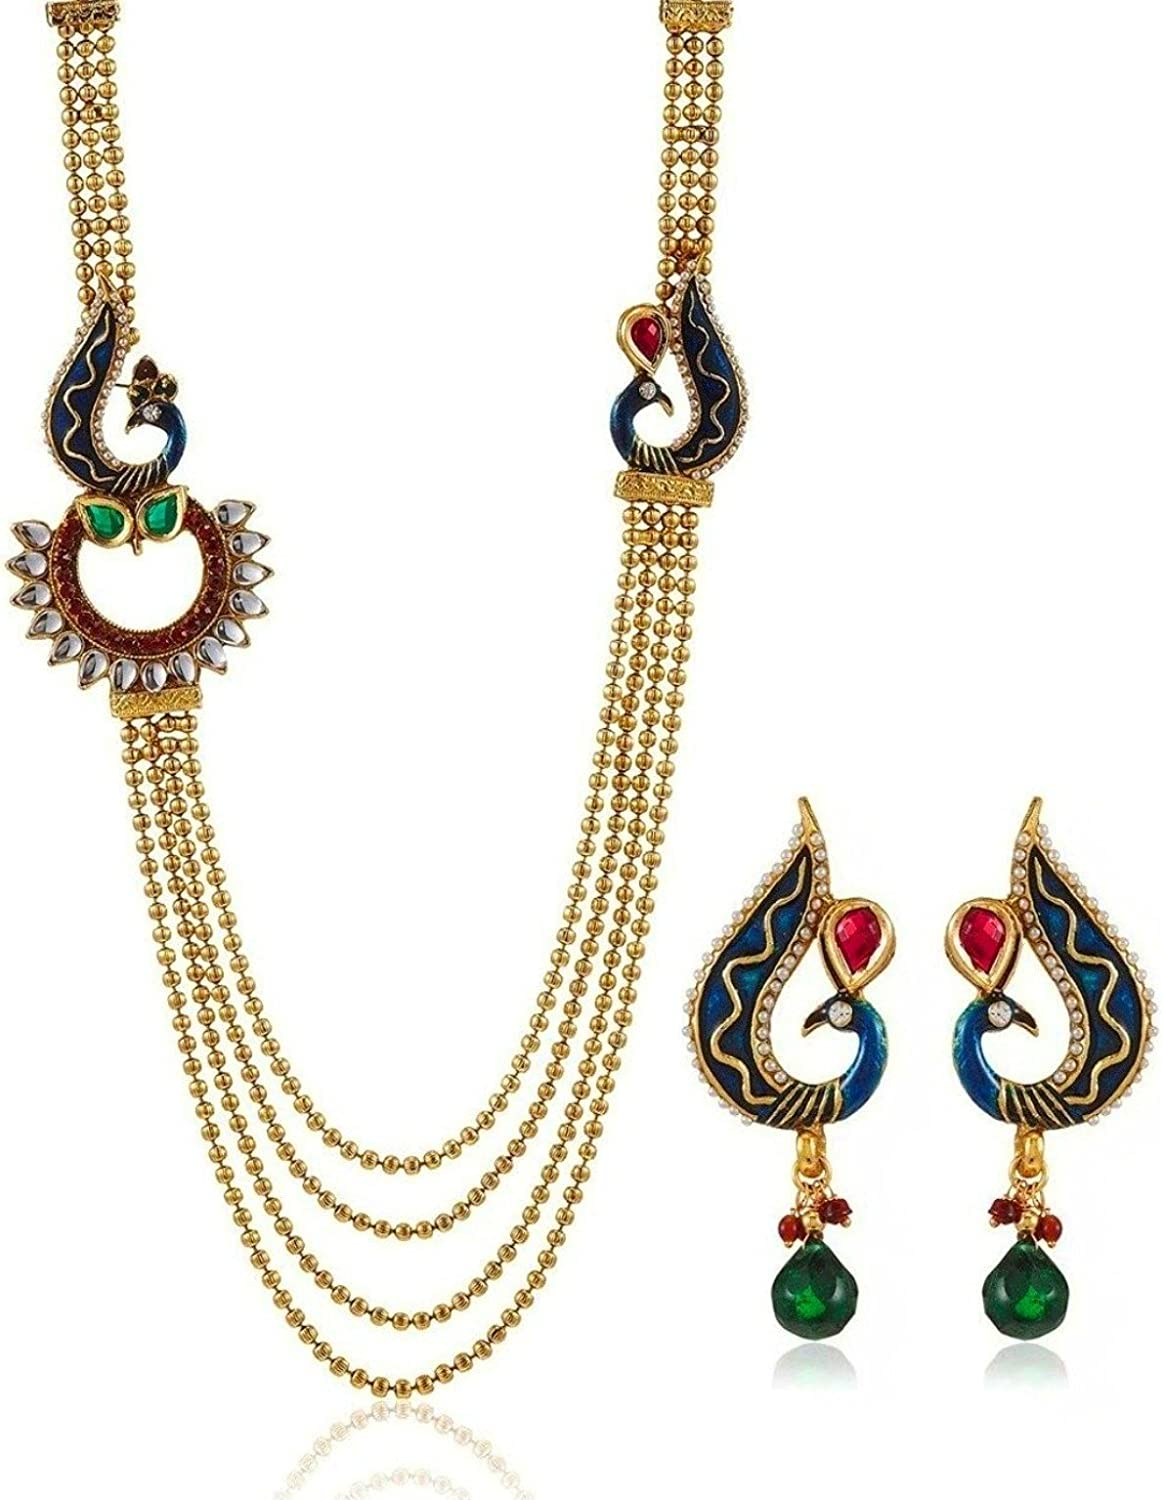 Royal Bling Knock-Knock Peacock Multi-Layer Indian Jewelry Set